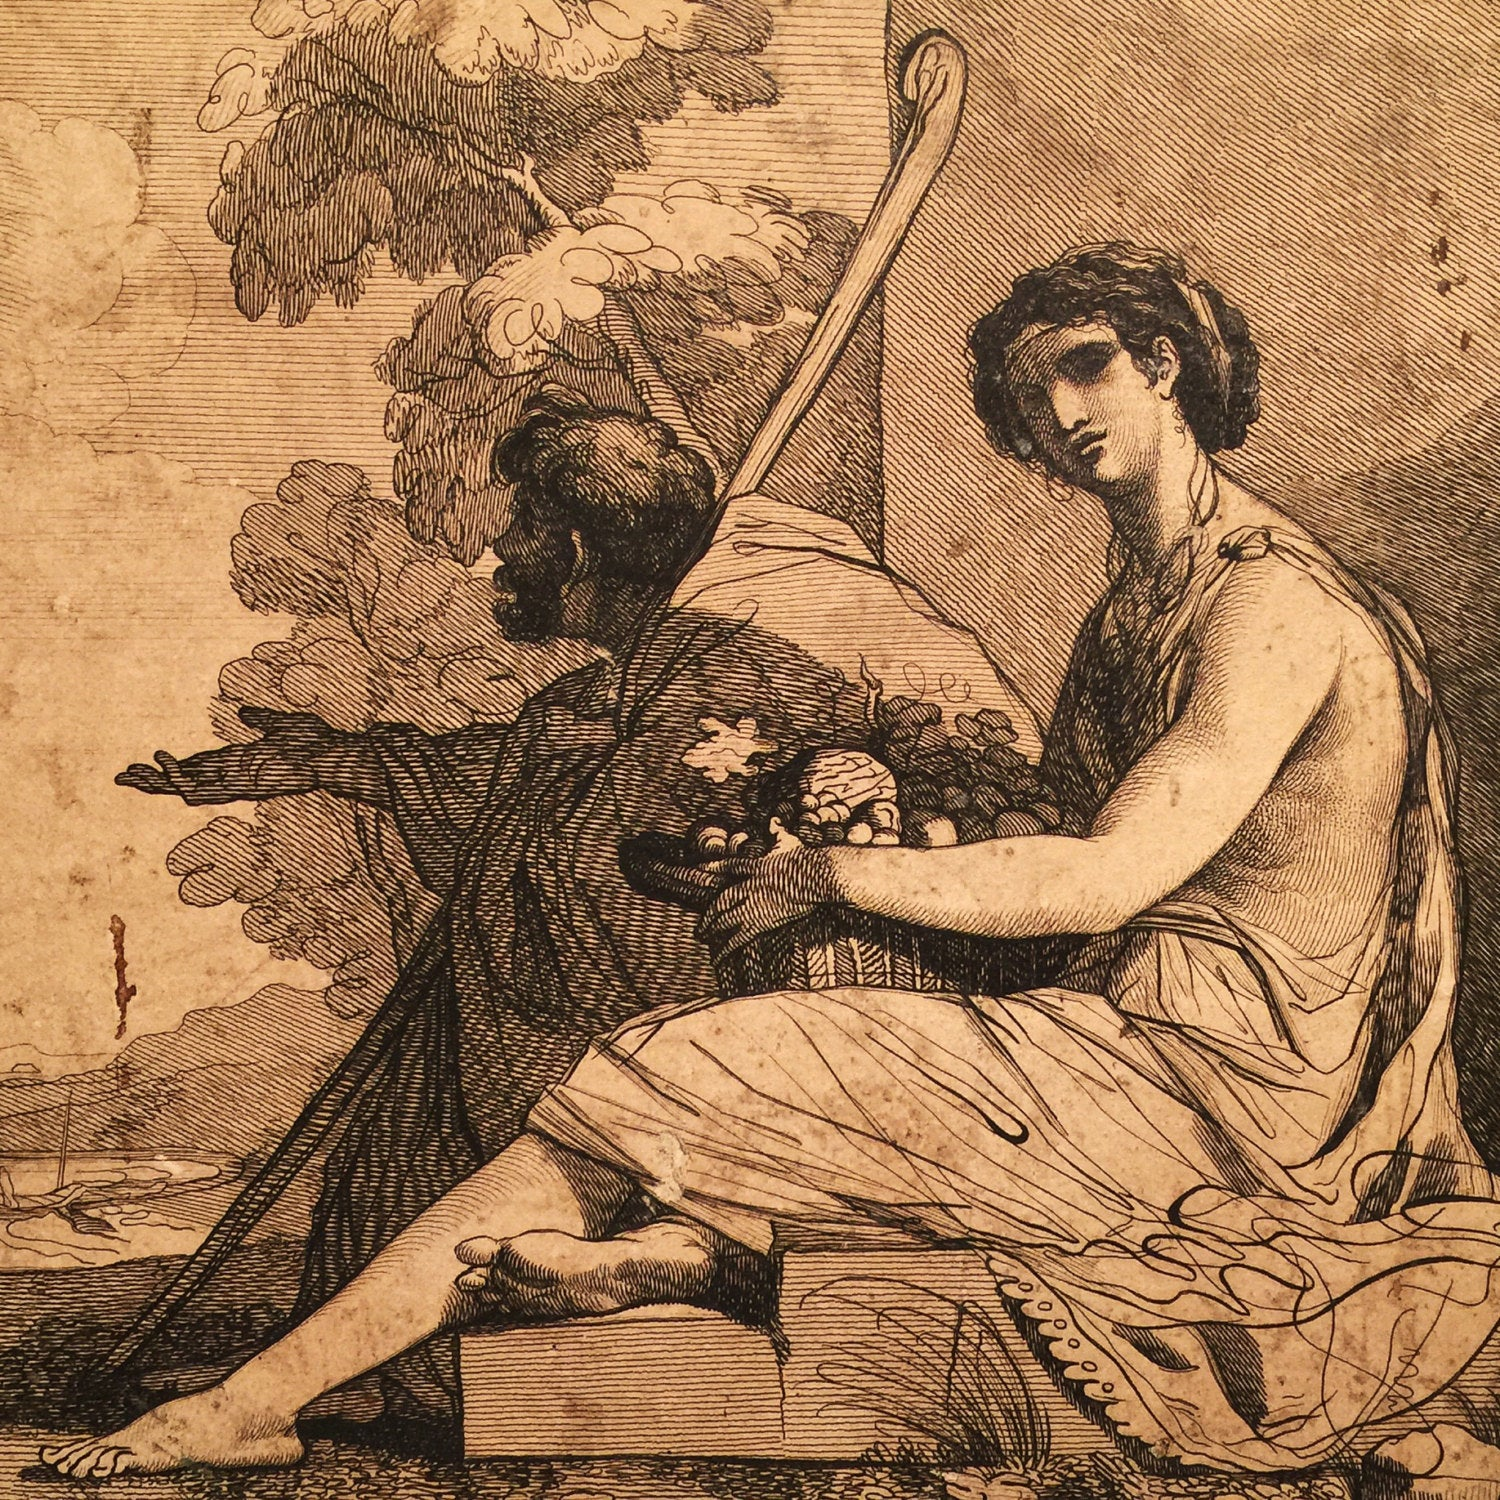 Robert Blythe Engraving after John Mortimer - Blind beggar and woman seated with a basket of fruit - Robert Blythe - 1820 - British Museum